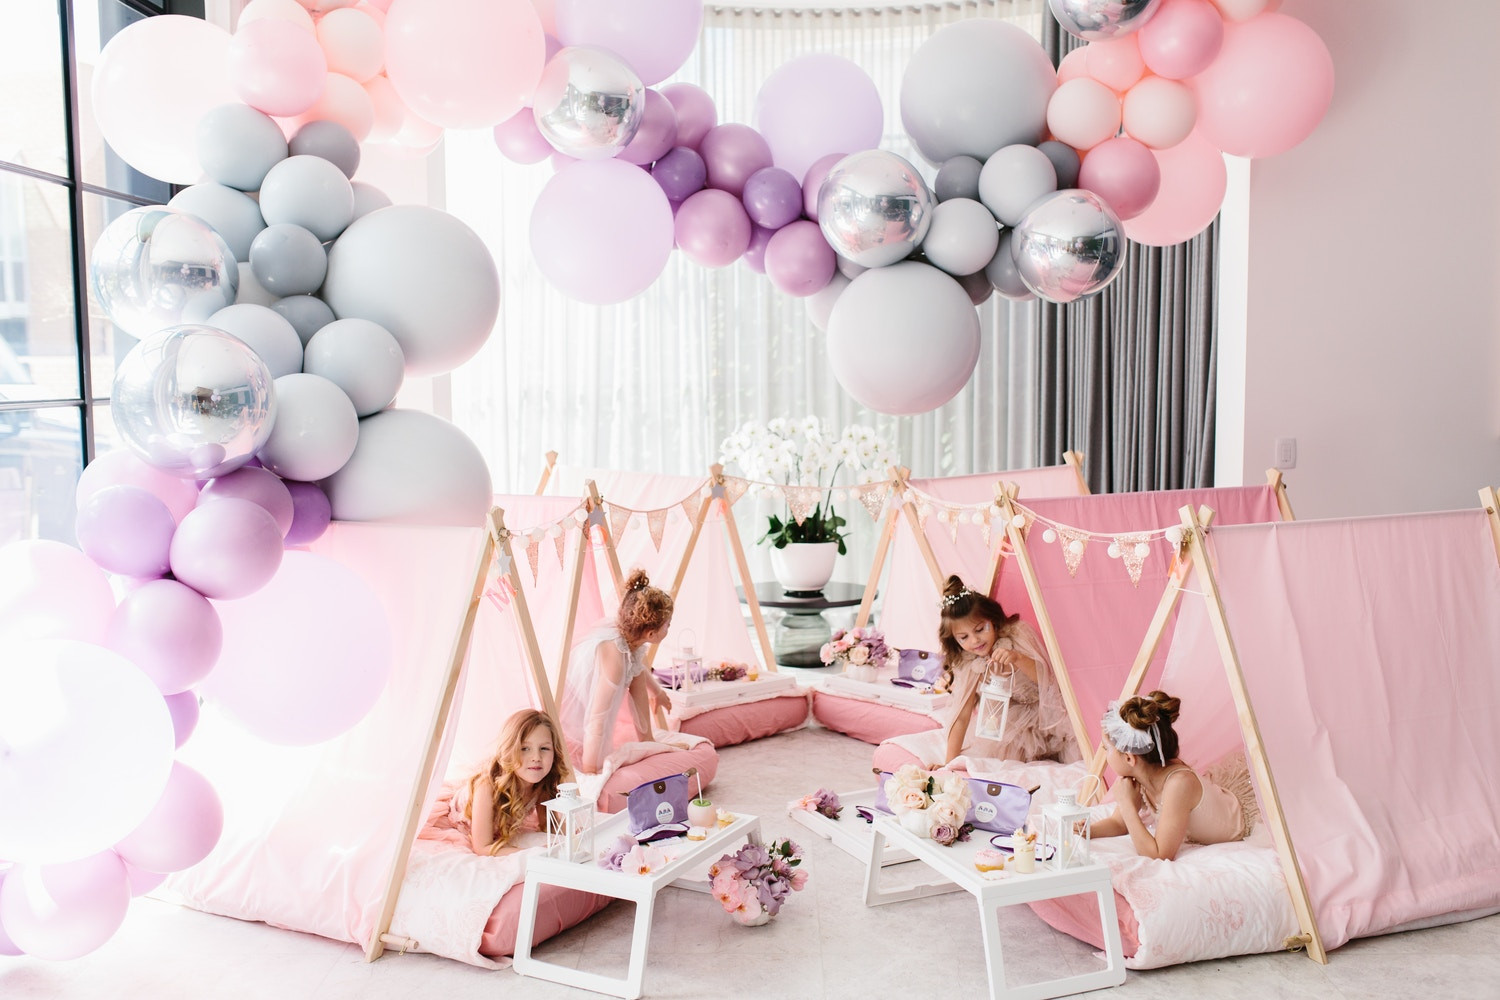 Halloween Party Ideas For 10 Year Olds  Spooky Slumber Party